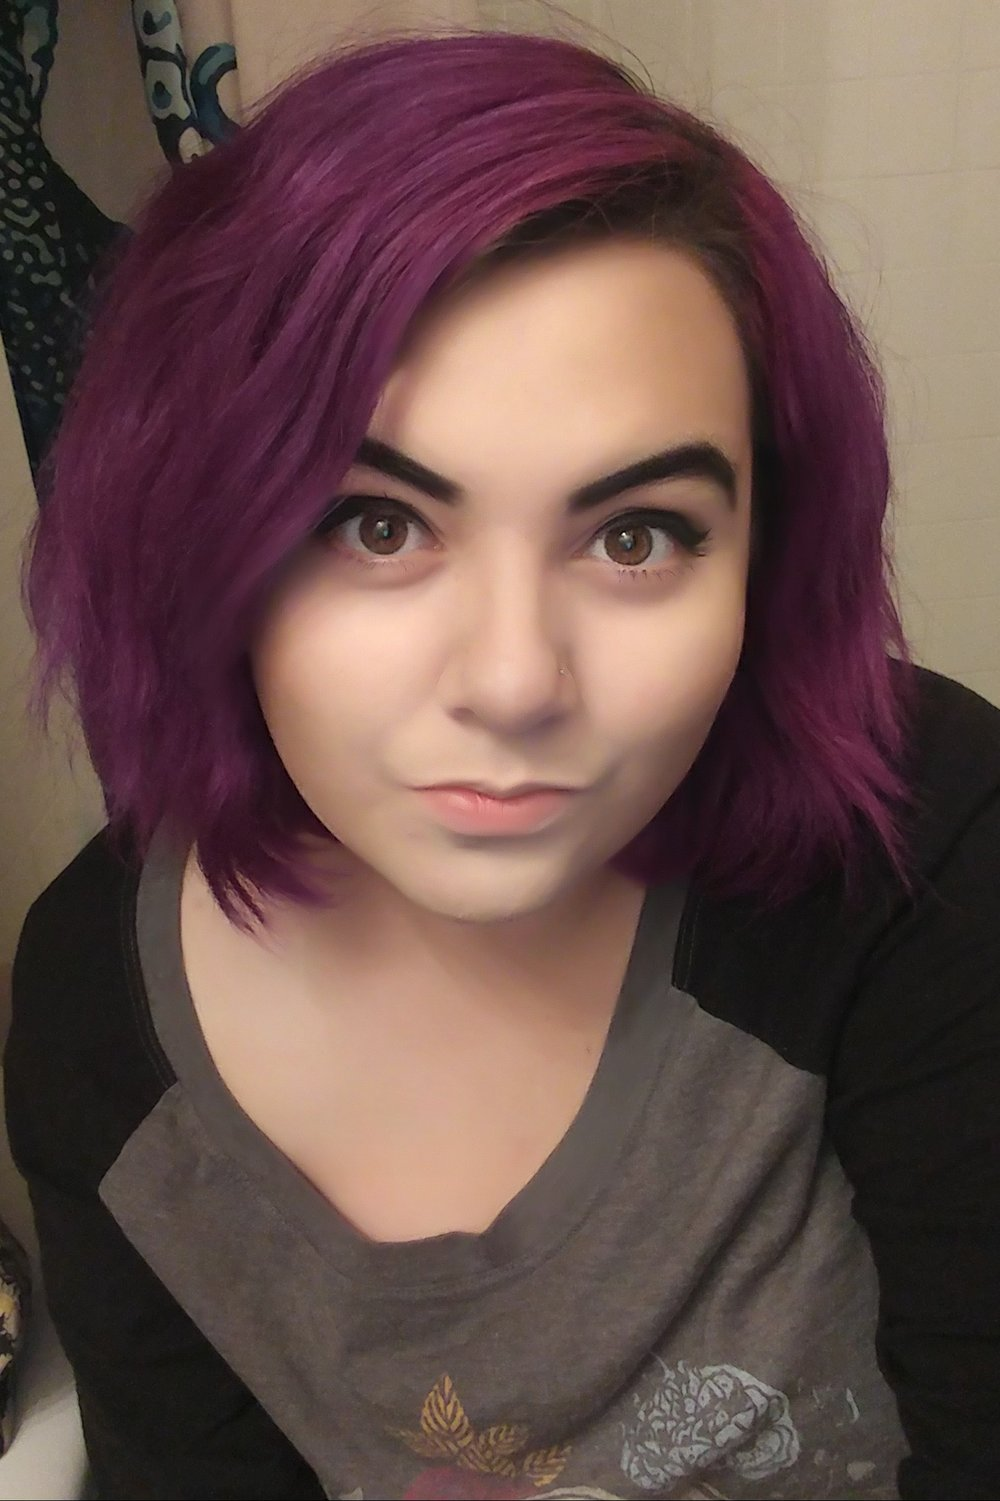 Alexandria Flores - Copy Chief -   Alexandria has an odd compulsion to relate everything in life to TV and movies. Most often it's Buffy the Vampire Slayer, Friends, or Harry Potter. Don't get her started on how much better Spike and Draco deserved.